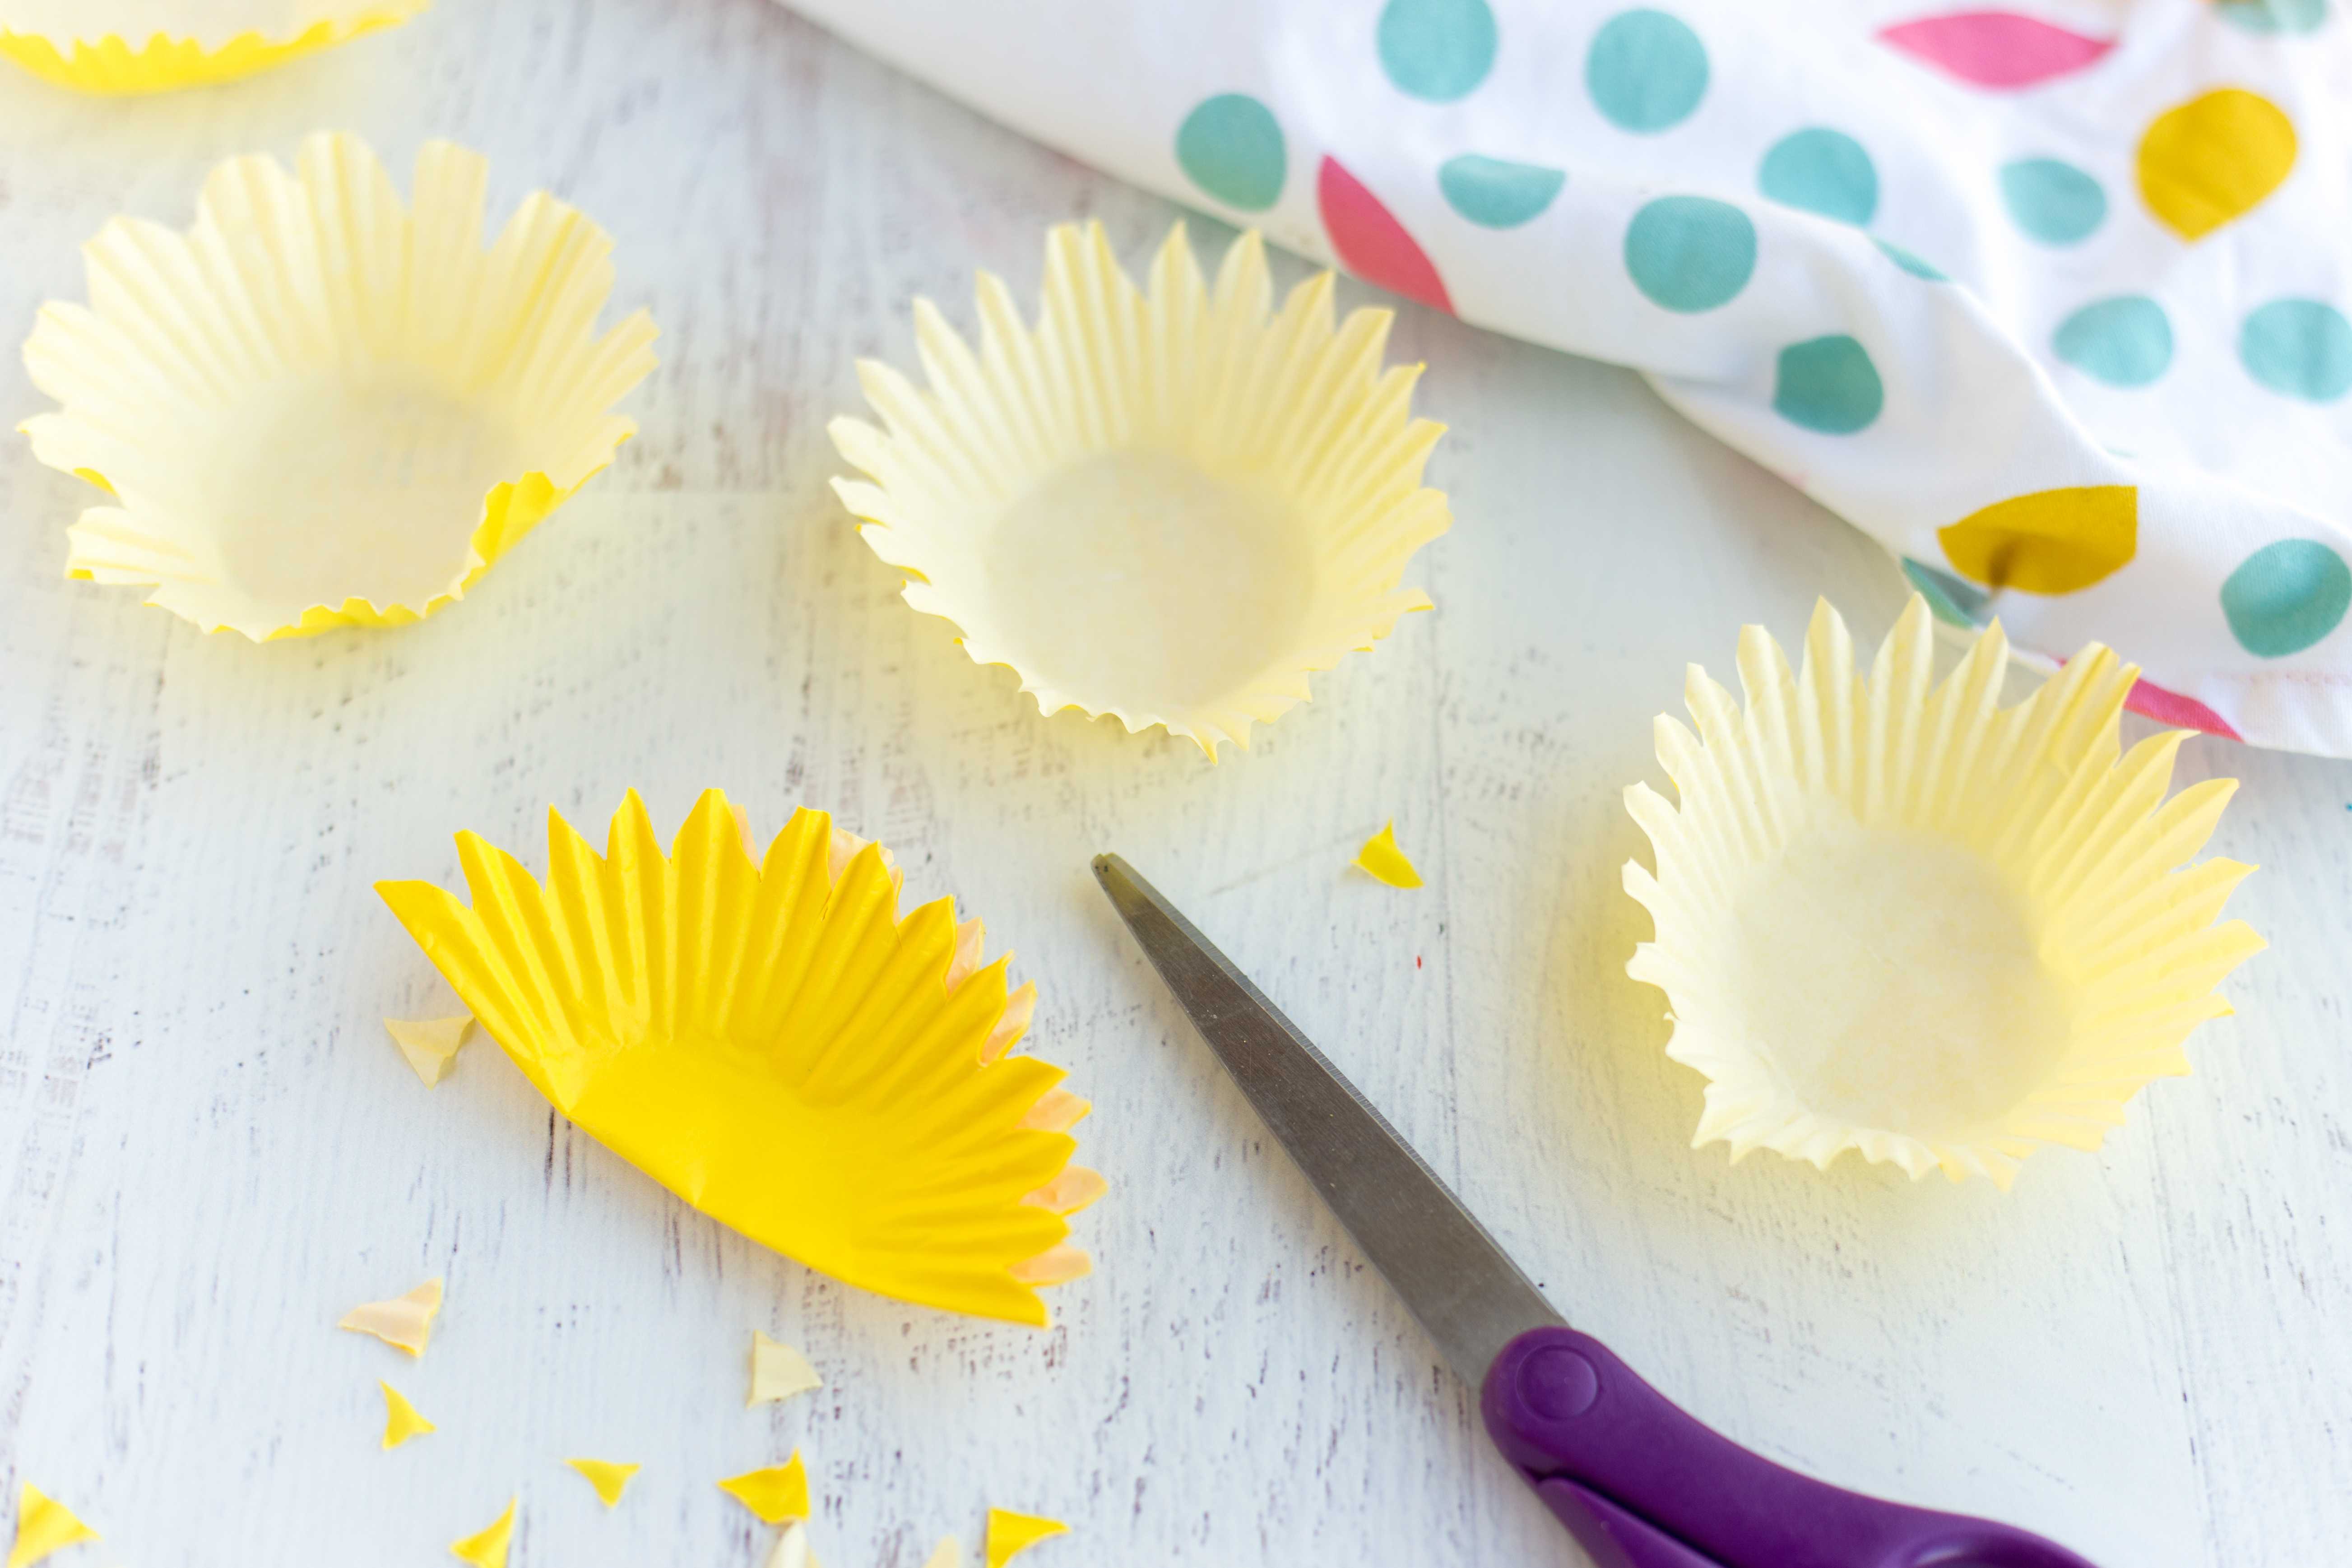 Yellow Cupcake liners into sunflower shapes